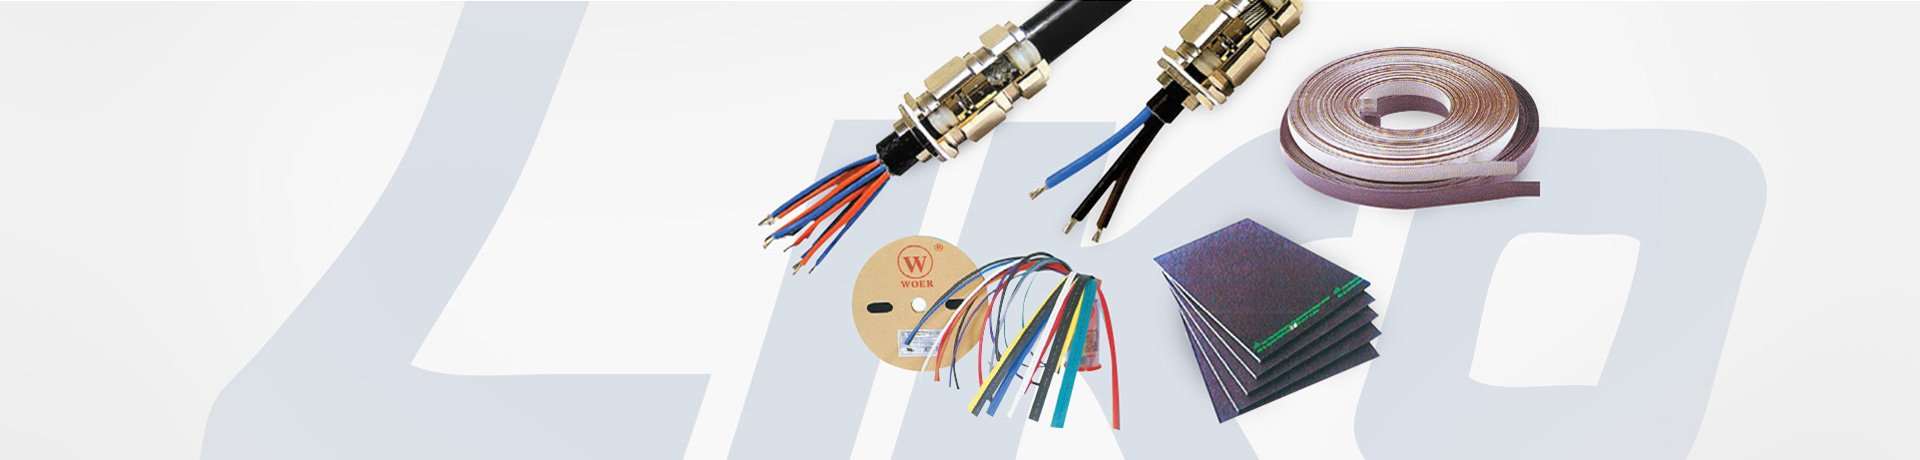 Electrical Supplier Singapore Electronic Accessories